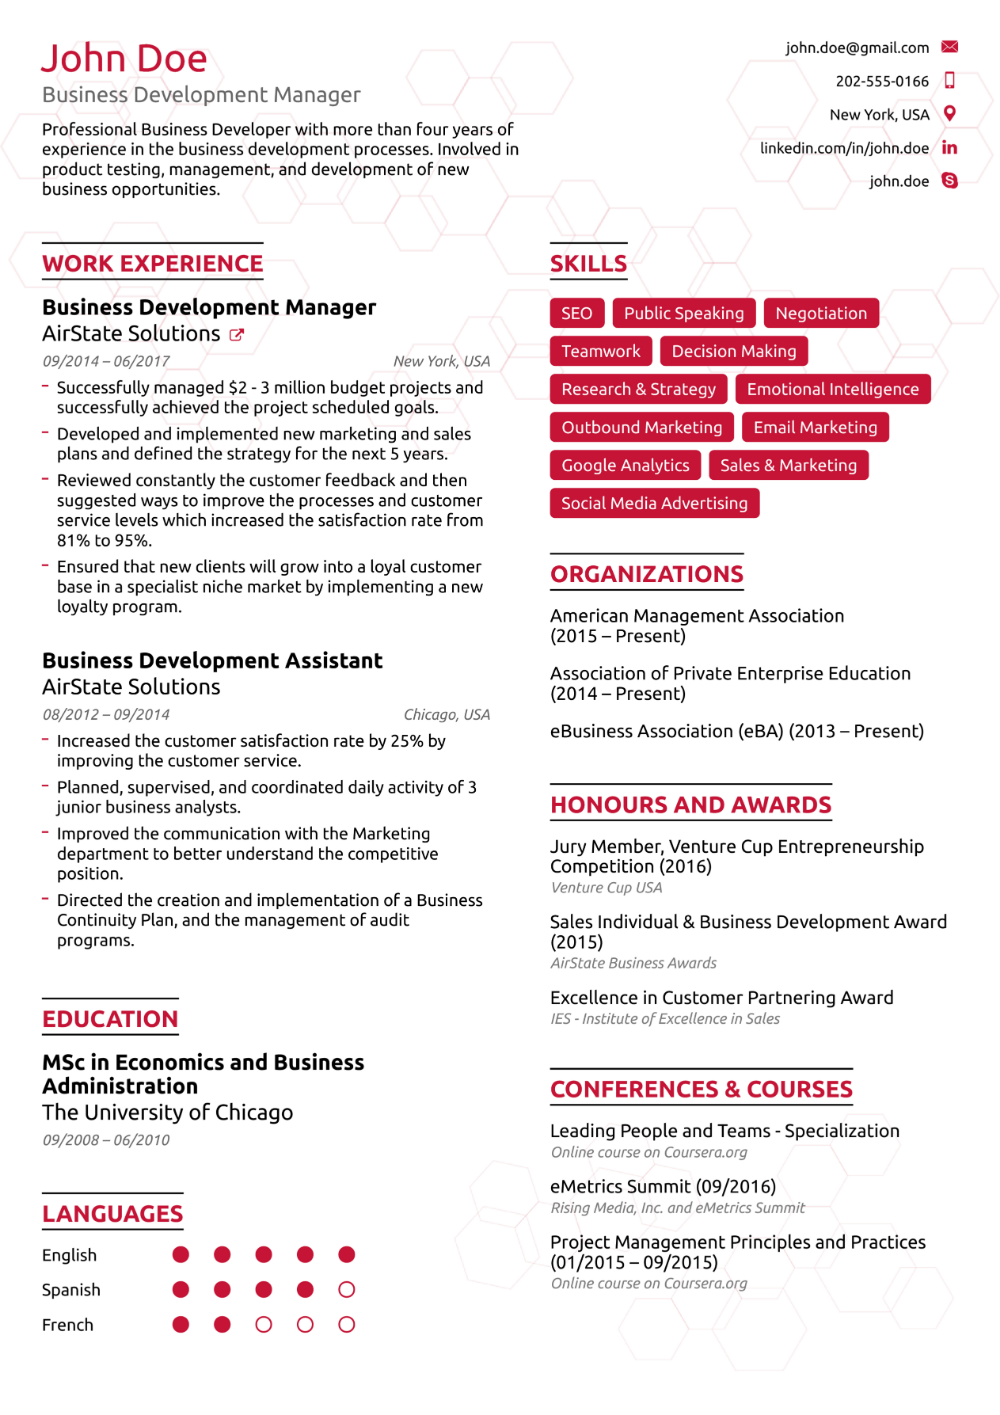 Resume Examples For Your 2019 Job Application Good Resume Examples Job Resume Examples Resume Skills